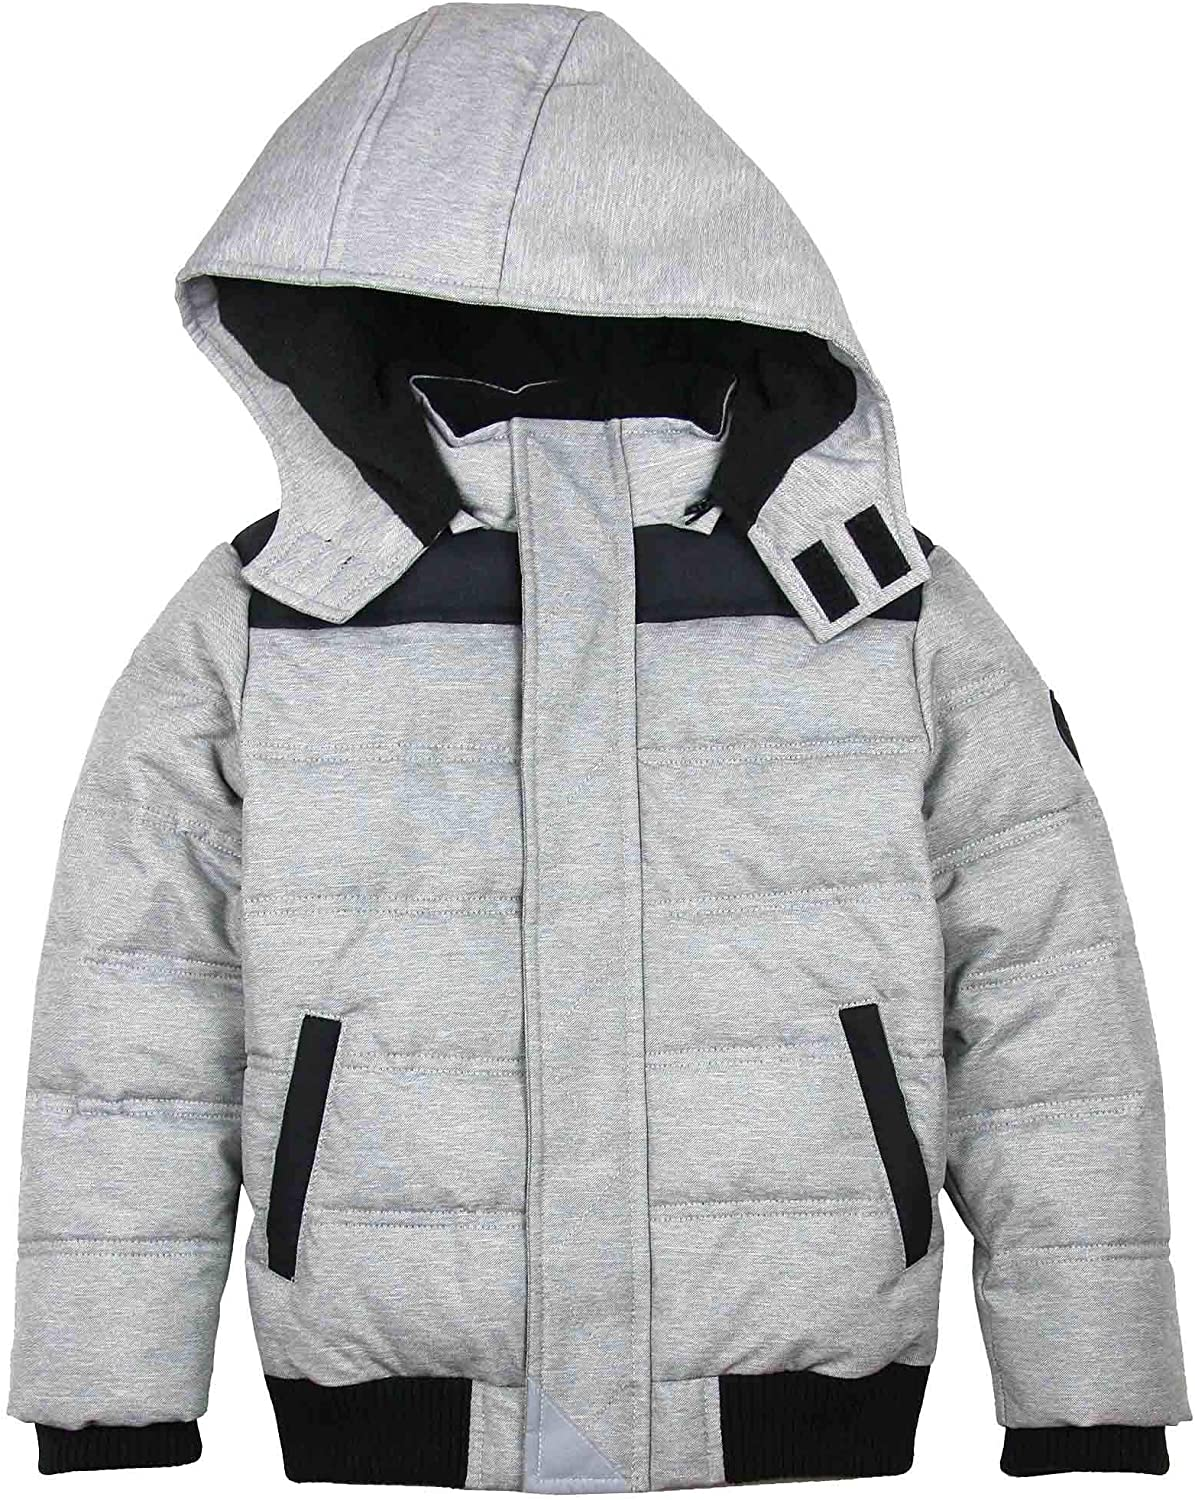 Sizes 4-12 3Pommes Boy/'s Quilted Puffer Coat